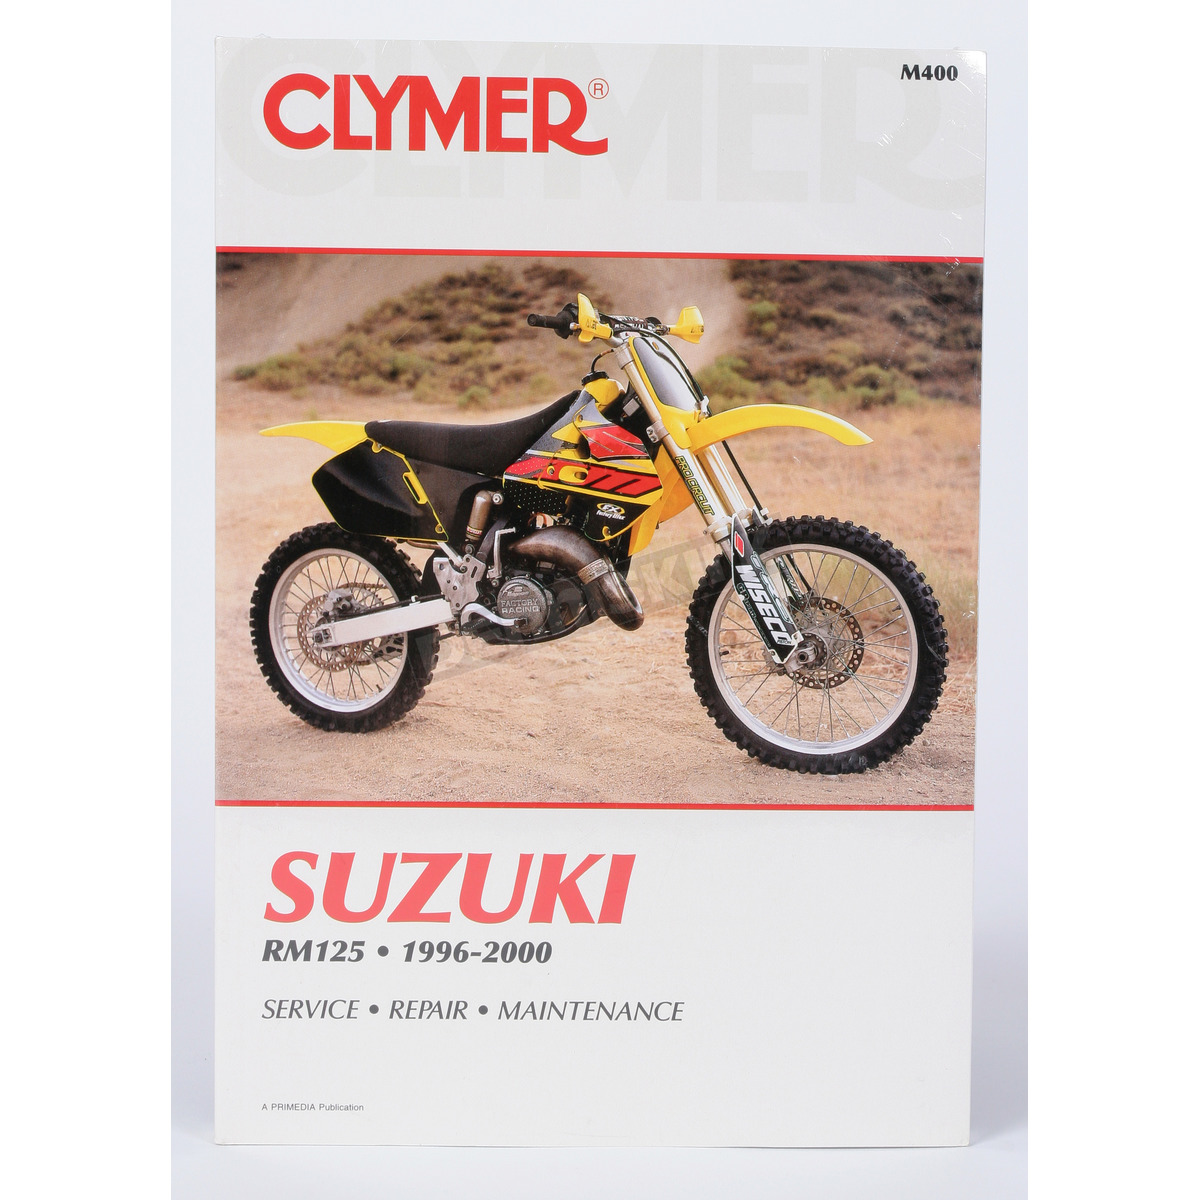 Clymer Suzuki Repair Manual - M400